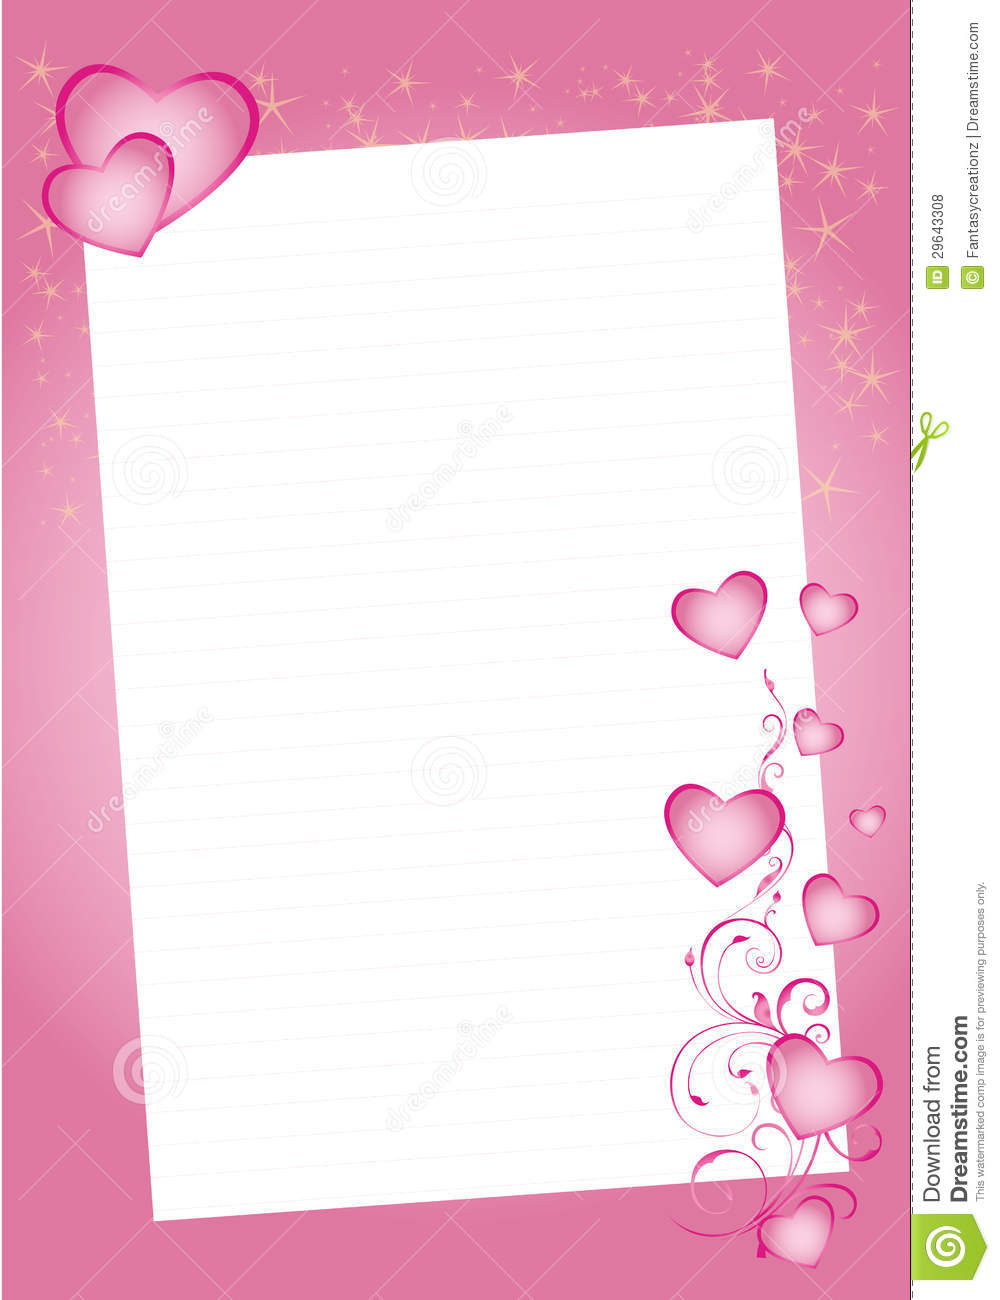 download valentine hearts border stock vector illustration of send 29643308